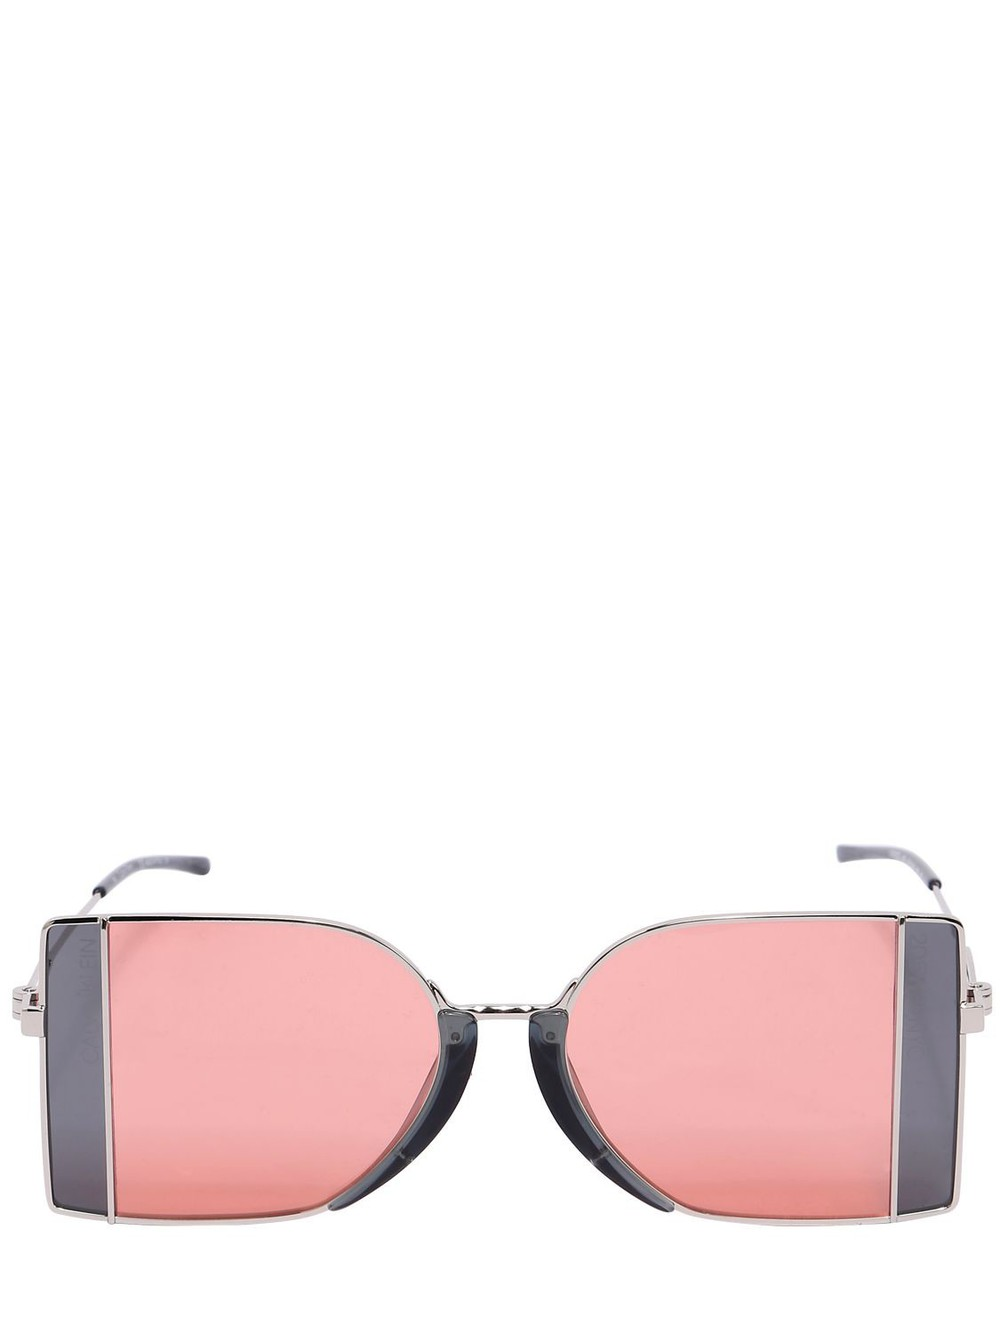 CALVIN KLEIN 205 W39 NYC Squared See-thru Lens Sunglasses in grey / pink